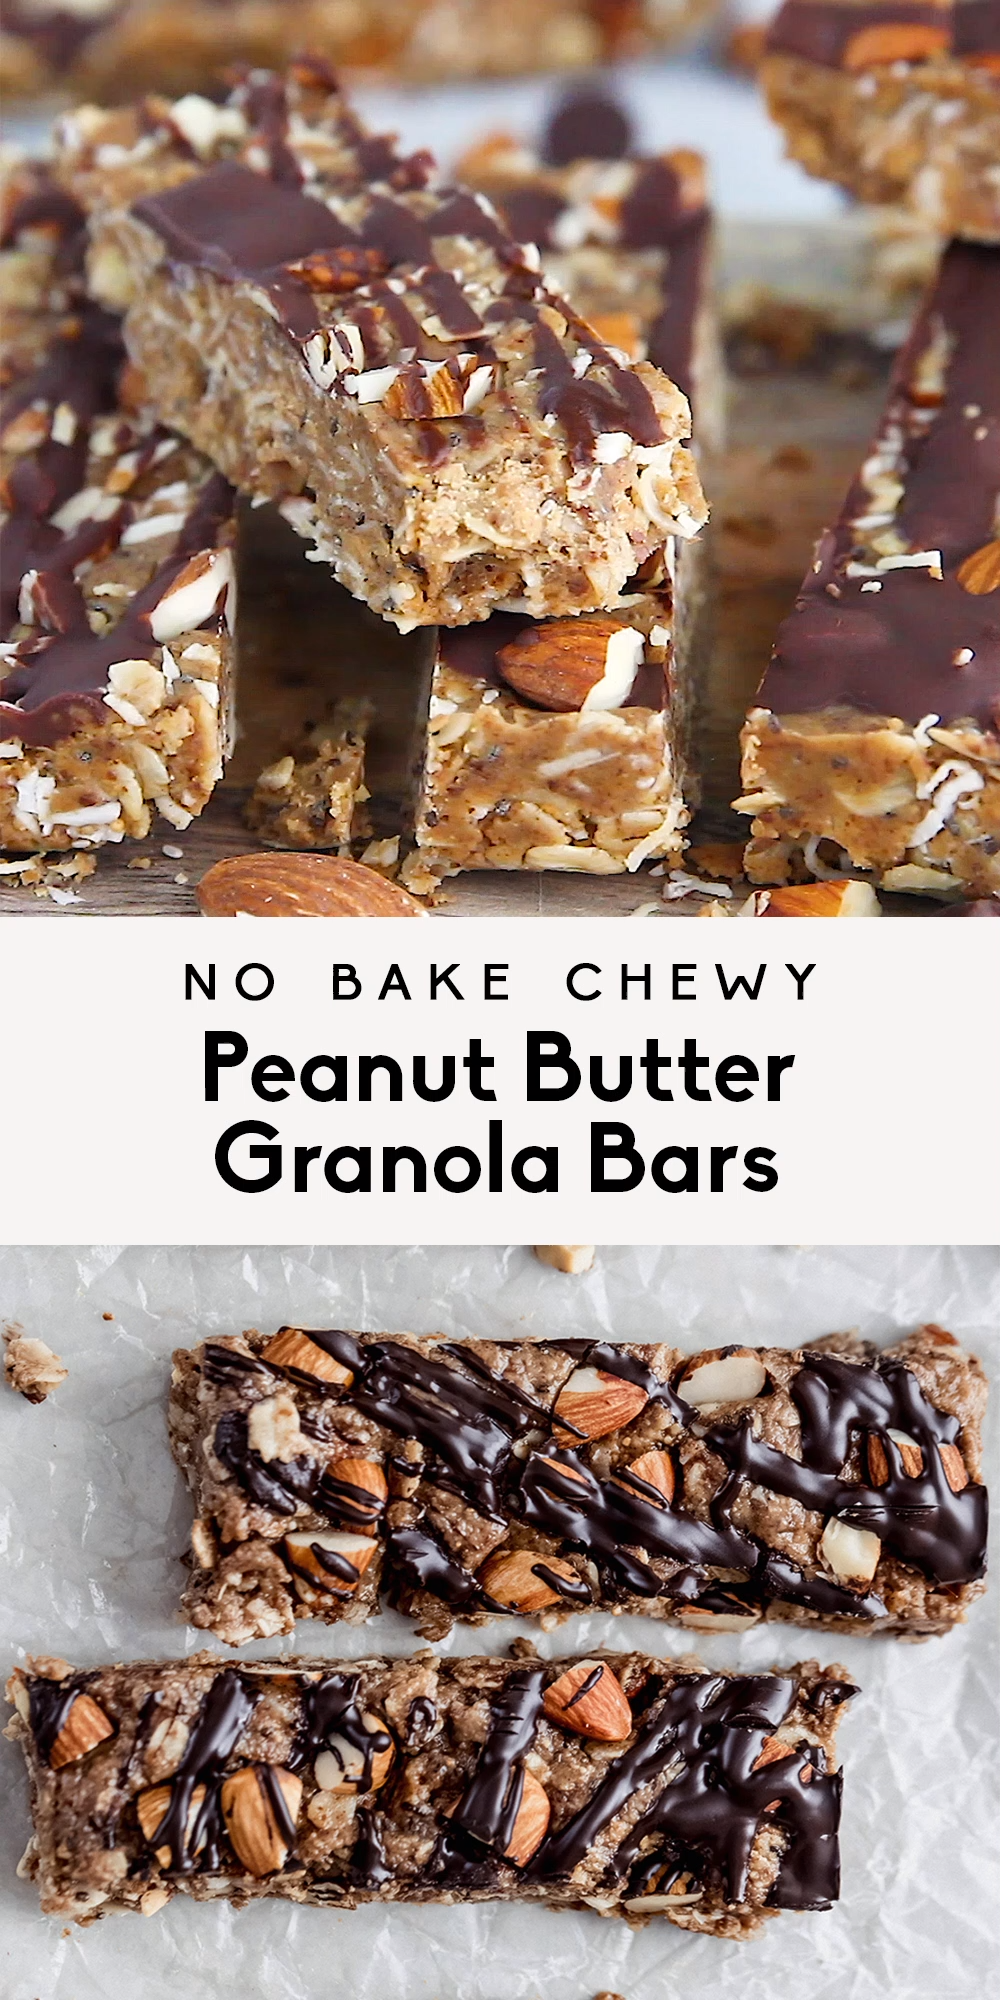 Photo of No Bake Chewy Peanut Butter Granola Bars